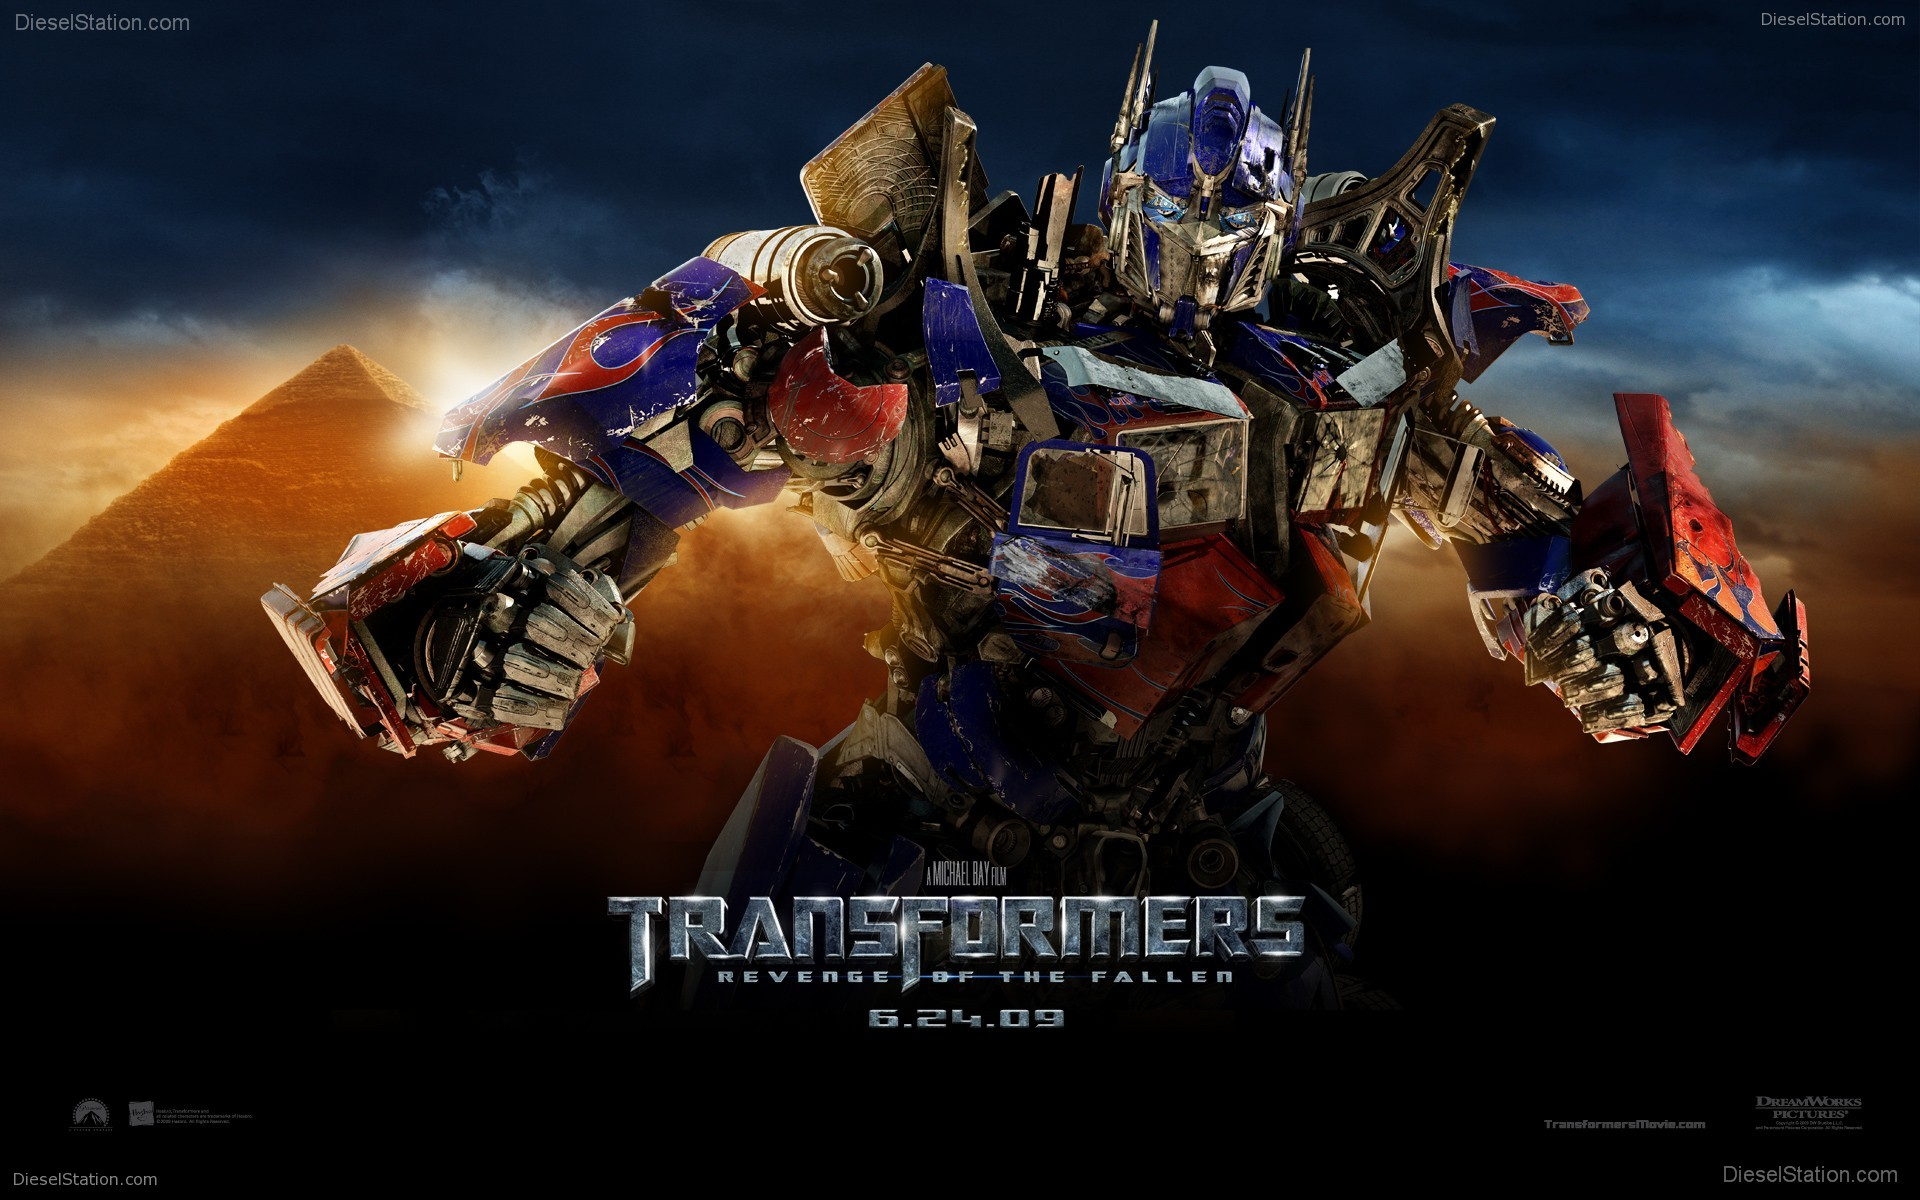 Transformers Gen 2 commercial (click for video)